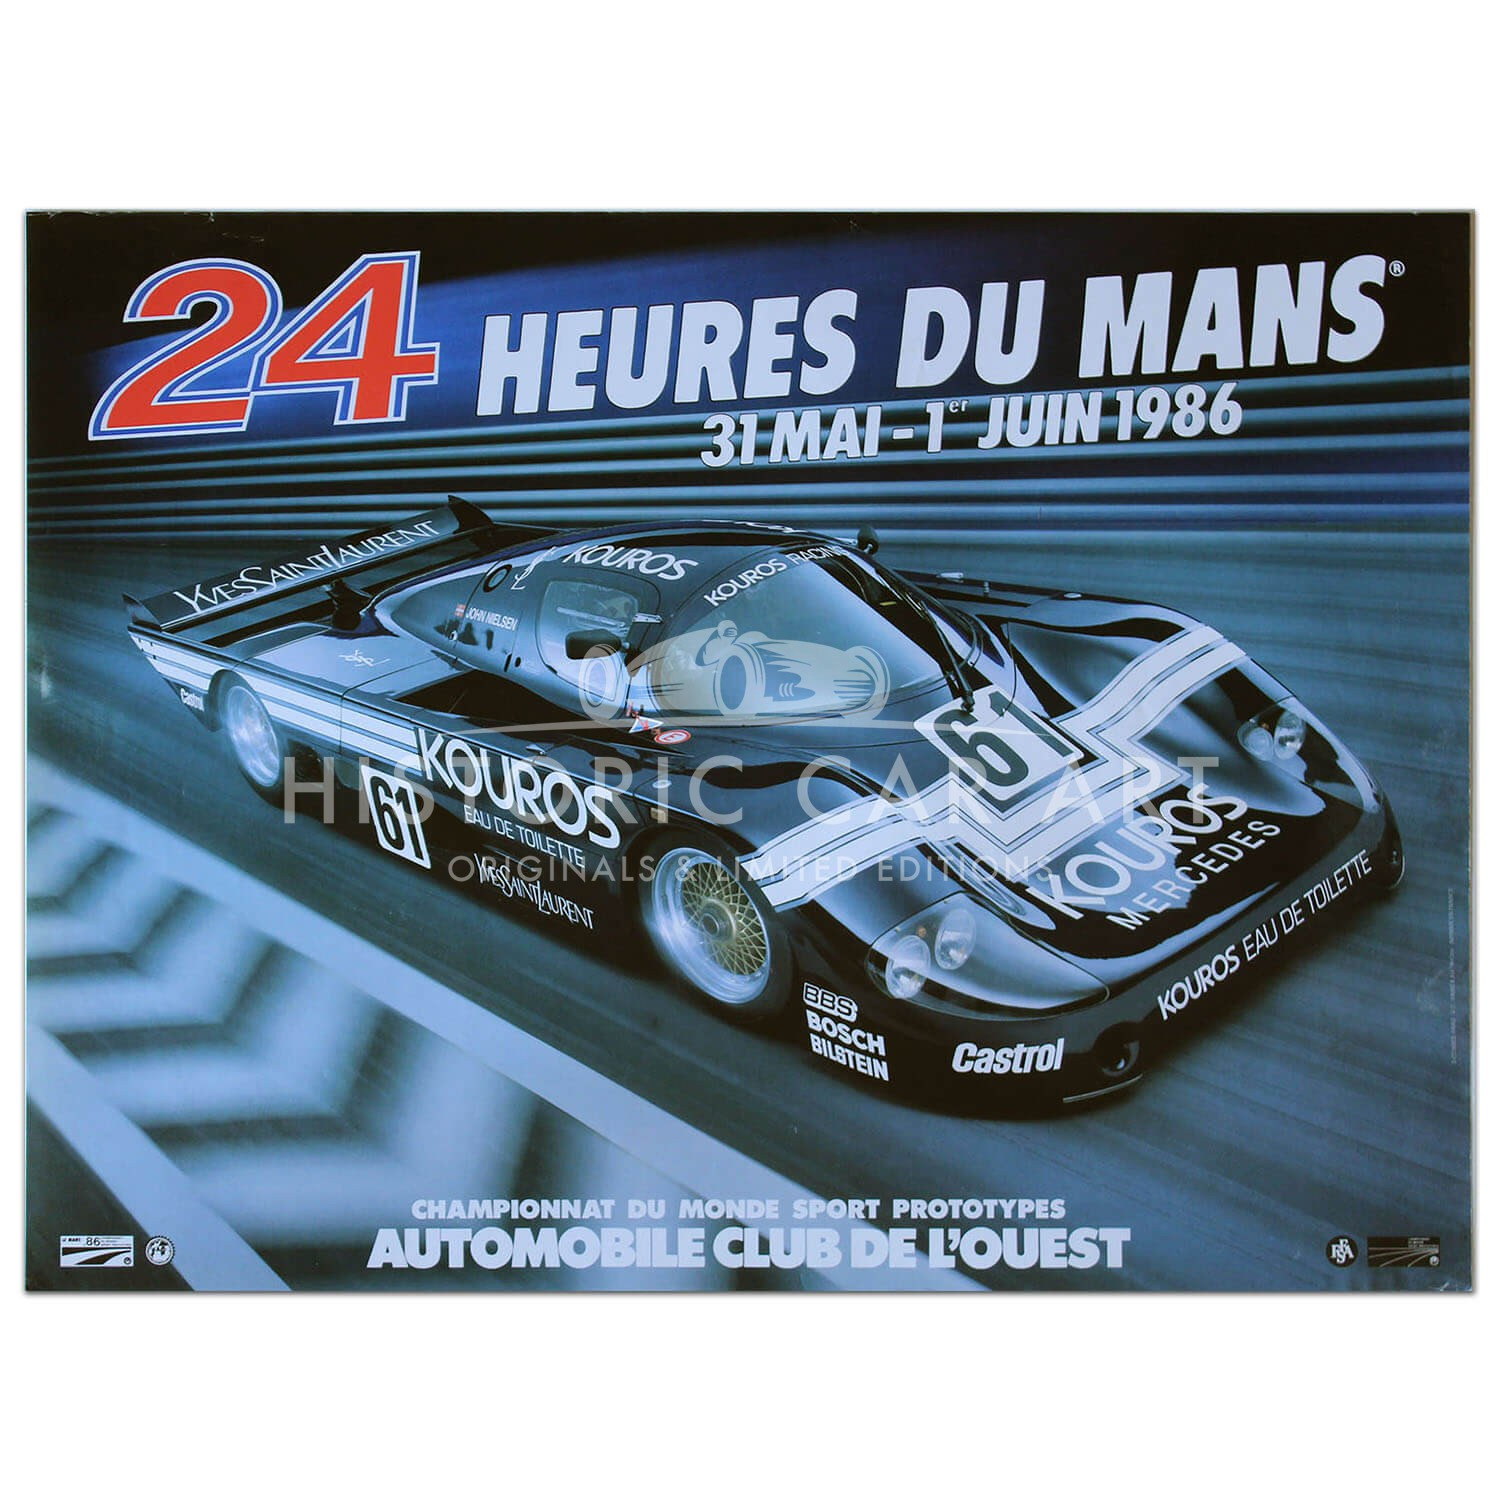 French | Le Mans 24 hours 1986 Poster